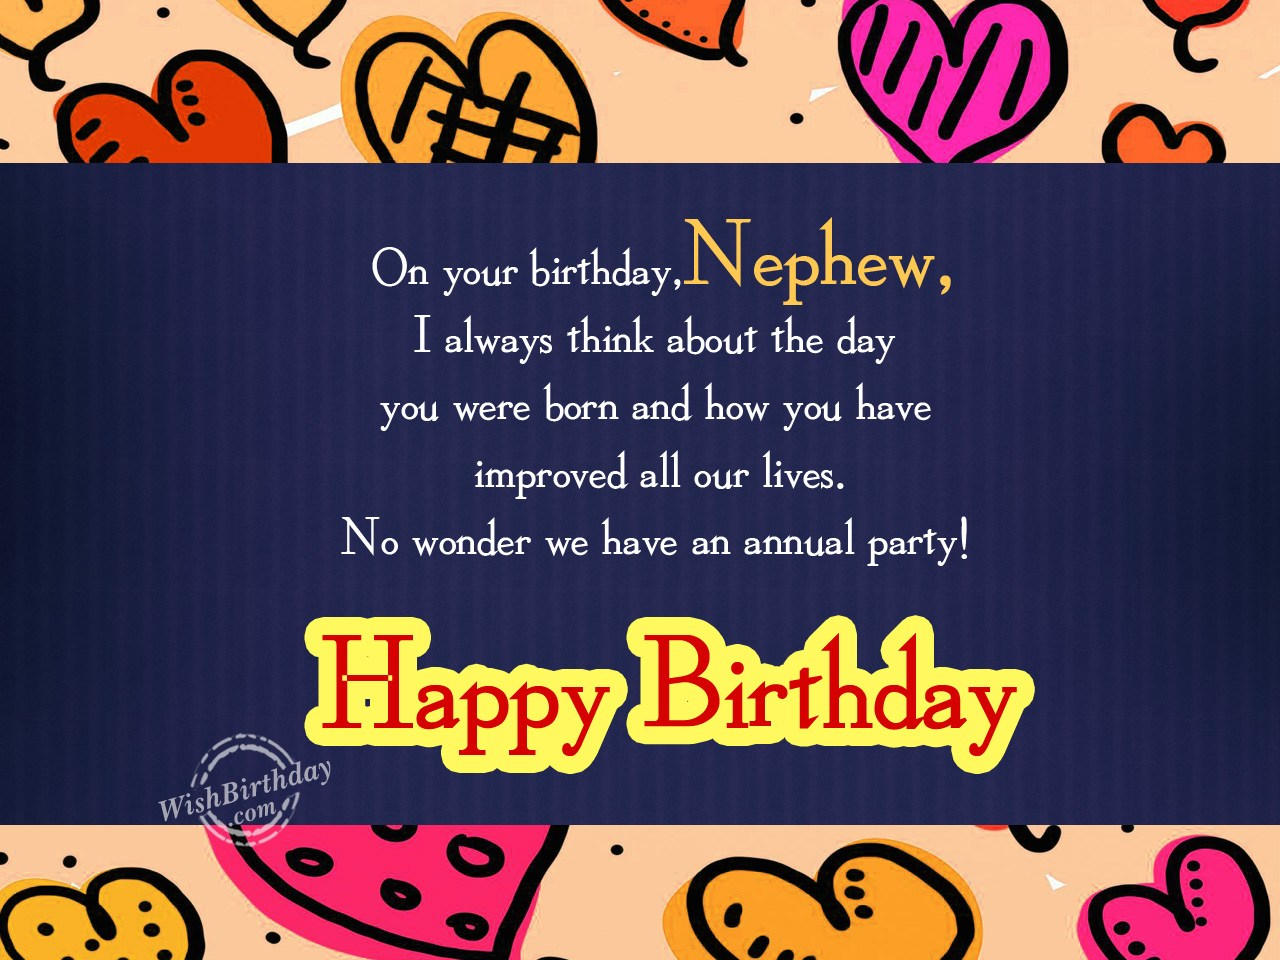 happy birthday wishes for nephew in english ; On-your-birthday-I-always-think-about-the-day